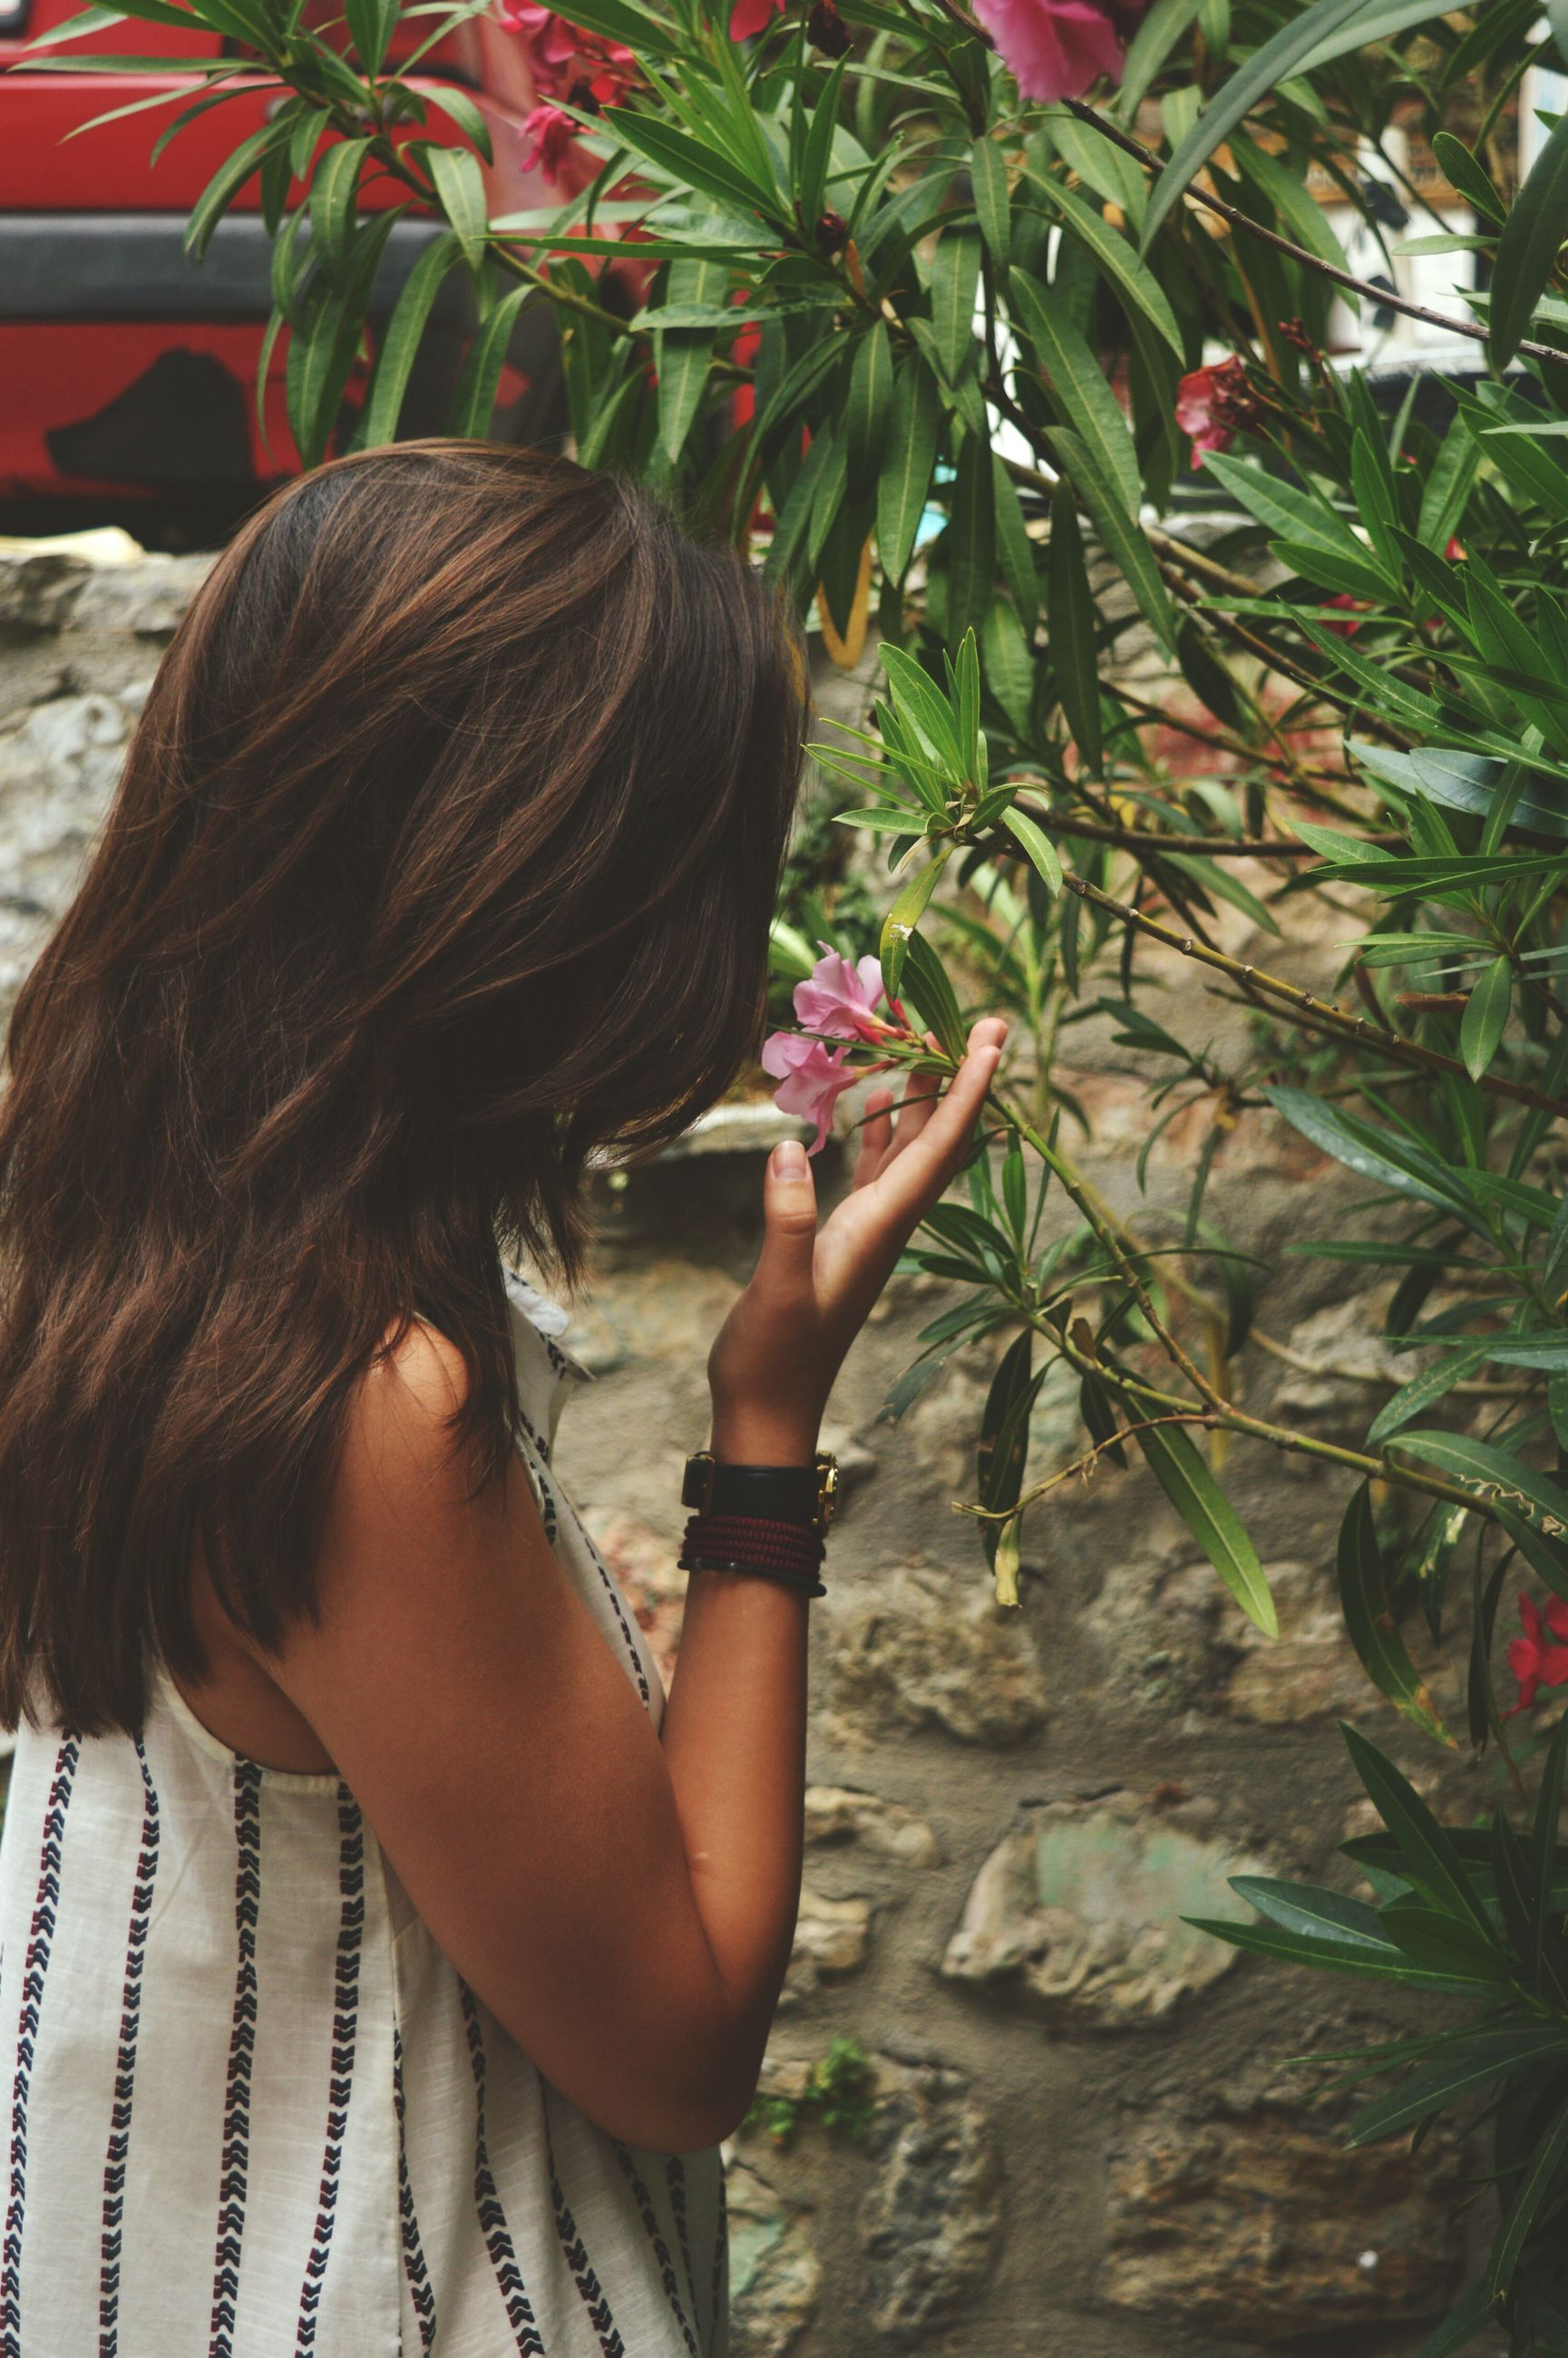 lifestyles, side view, leisure activity, young women, person, young adult, looking down, long hair, casual clothing, growth, plant, medium-length hair, nature, outdoors, flower, day, green color, one woman only